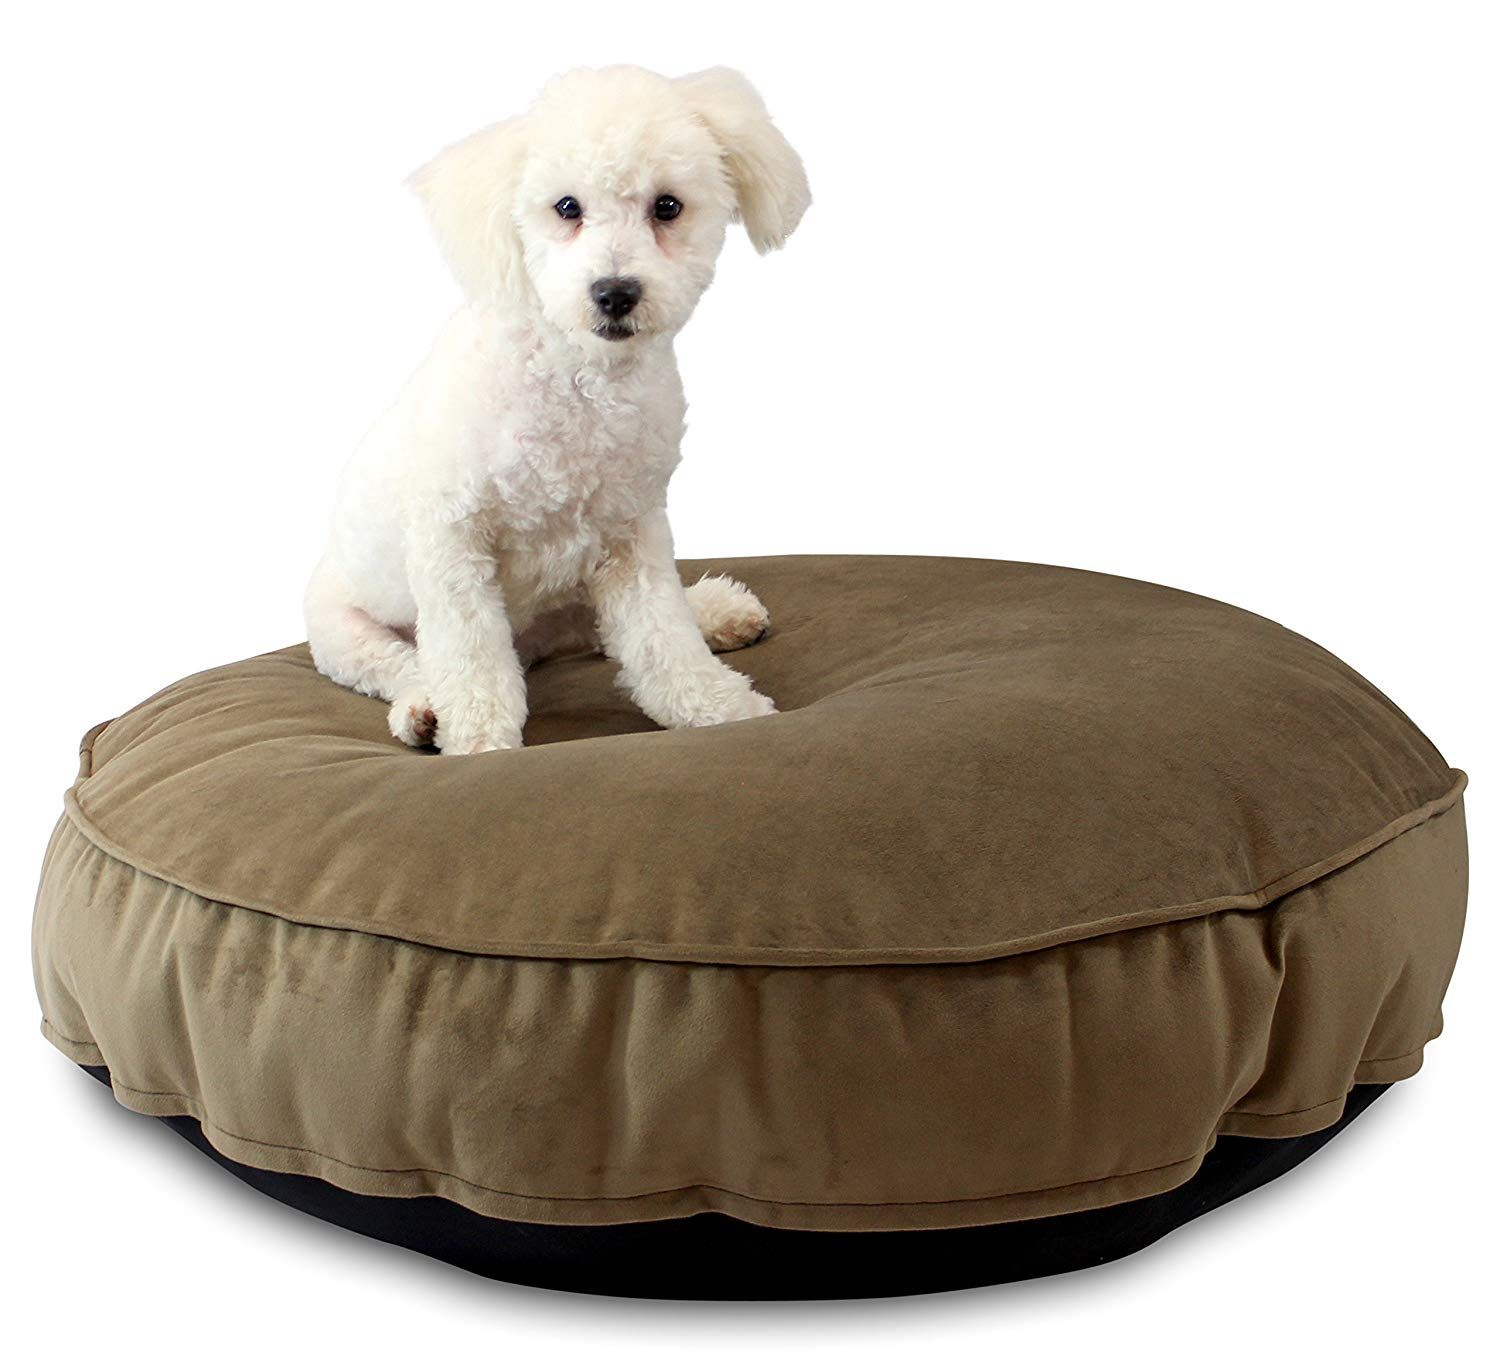 Oliver and Iris Plush Round Dog Bed * Sincerely hope that